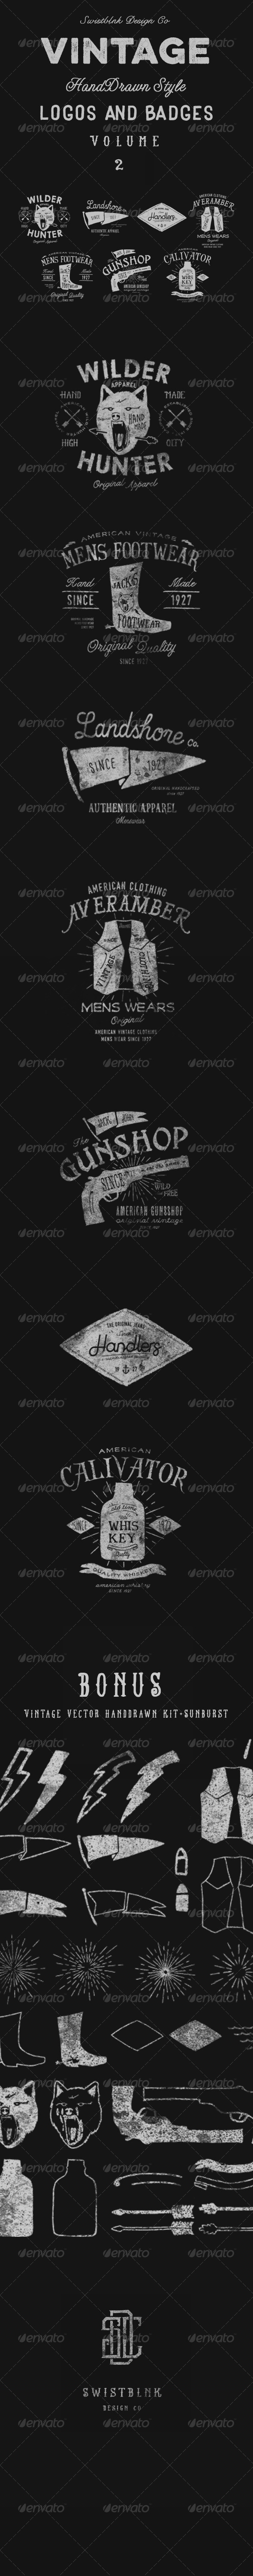 GraphicRiver Vintage Hand Drawn Style Logos And Badges Vol 2 8646218